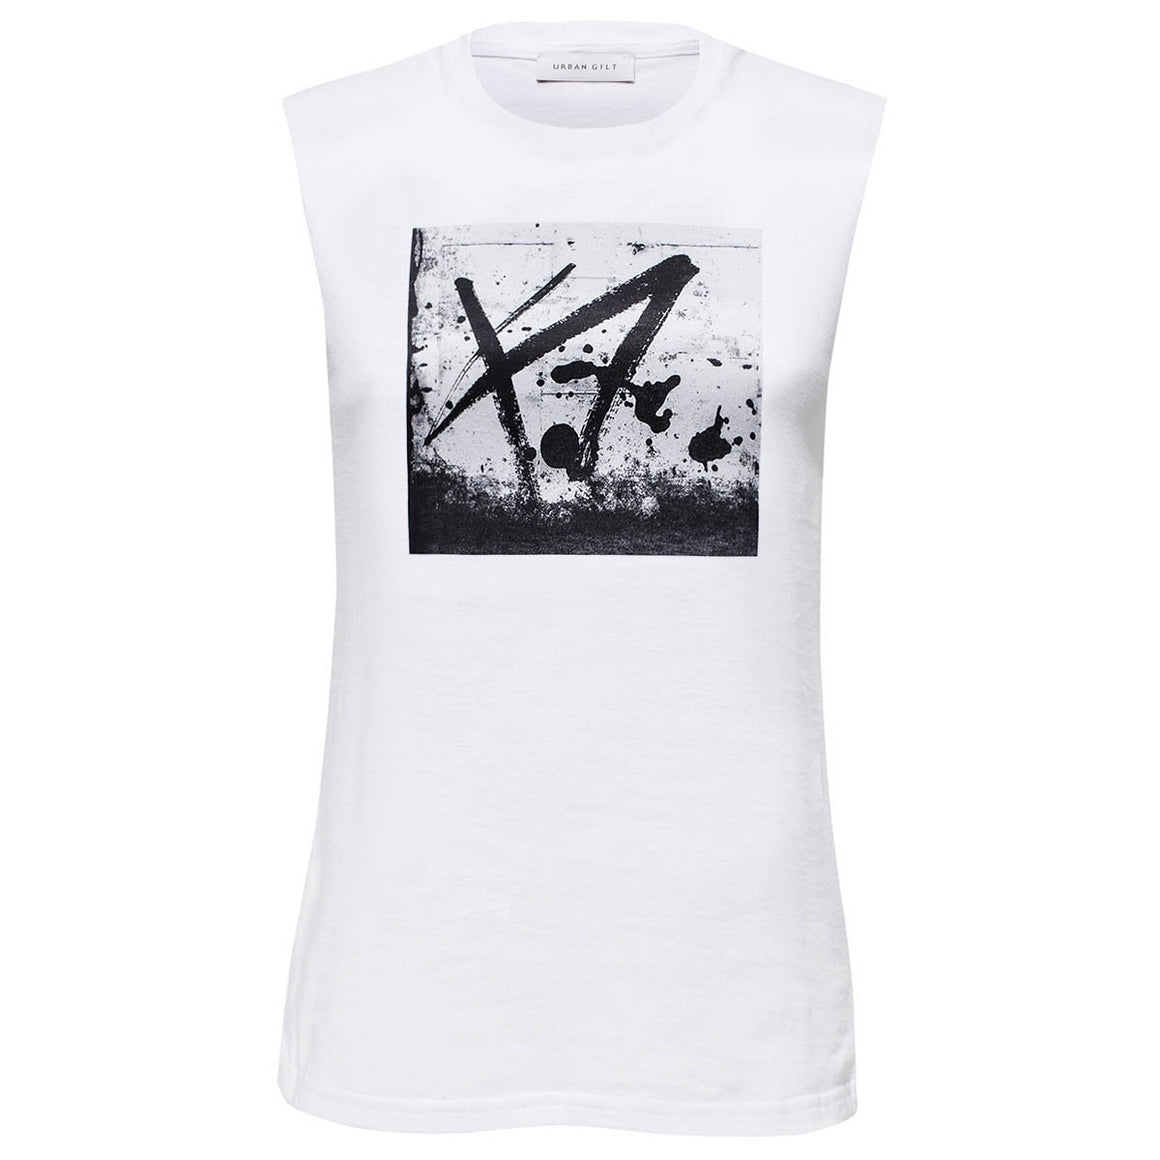 Selby White Graffiti Print Top Front View